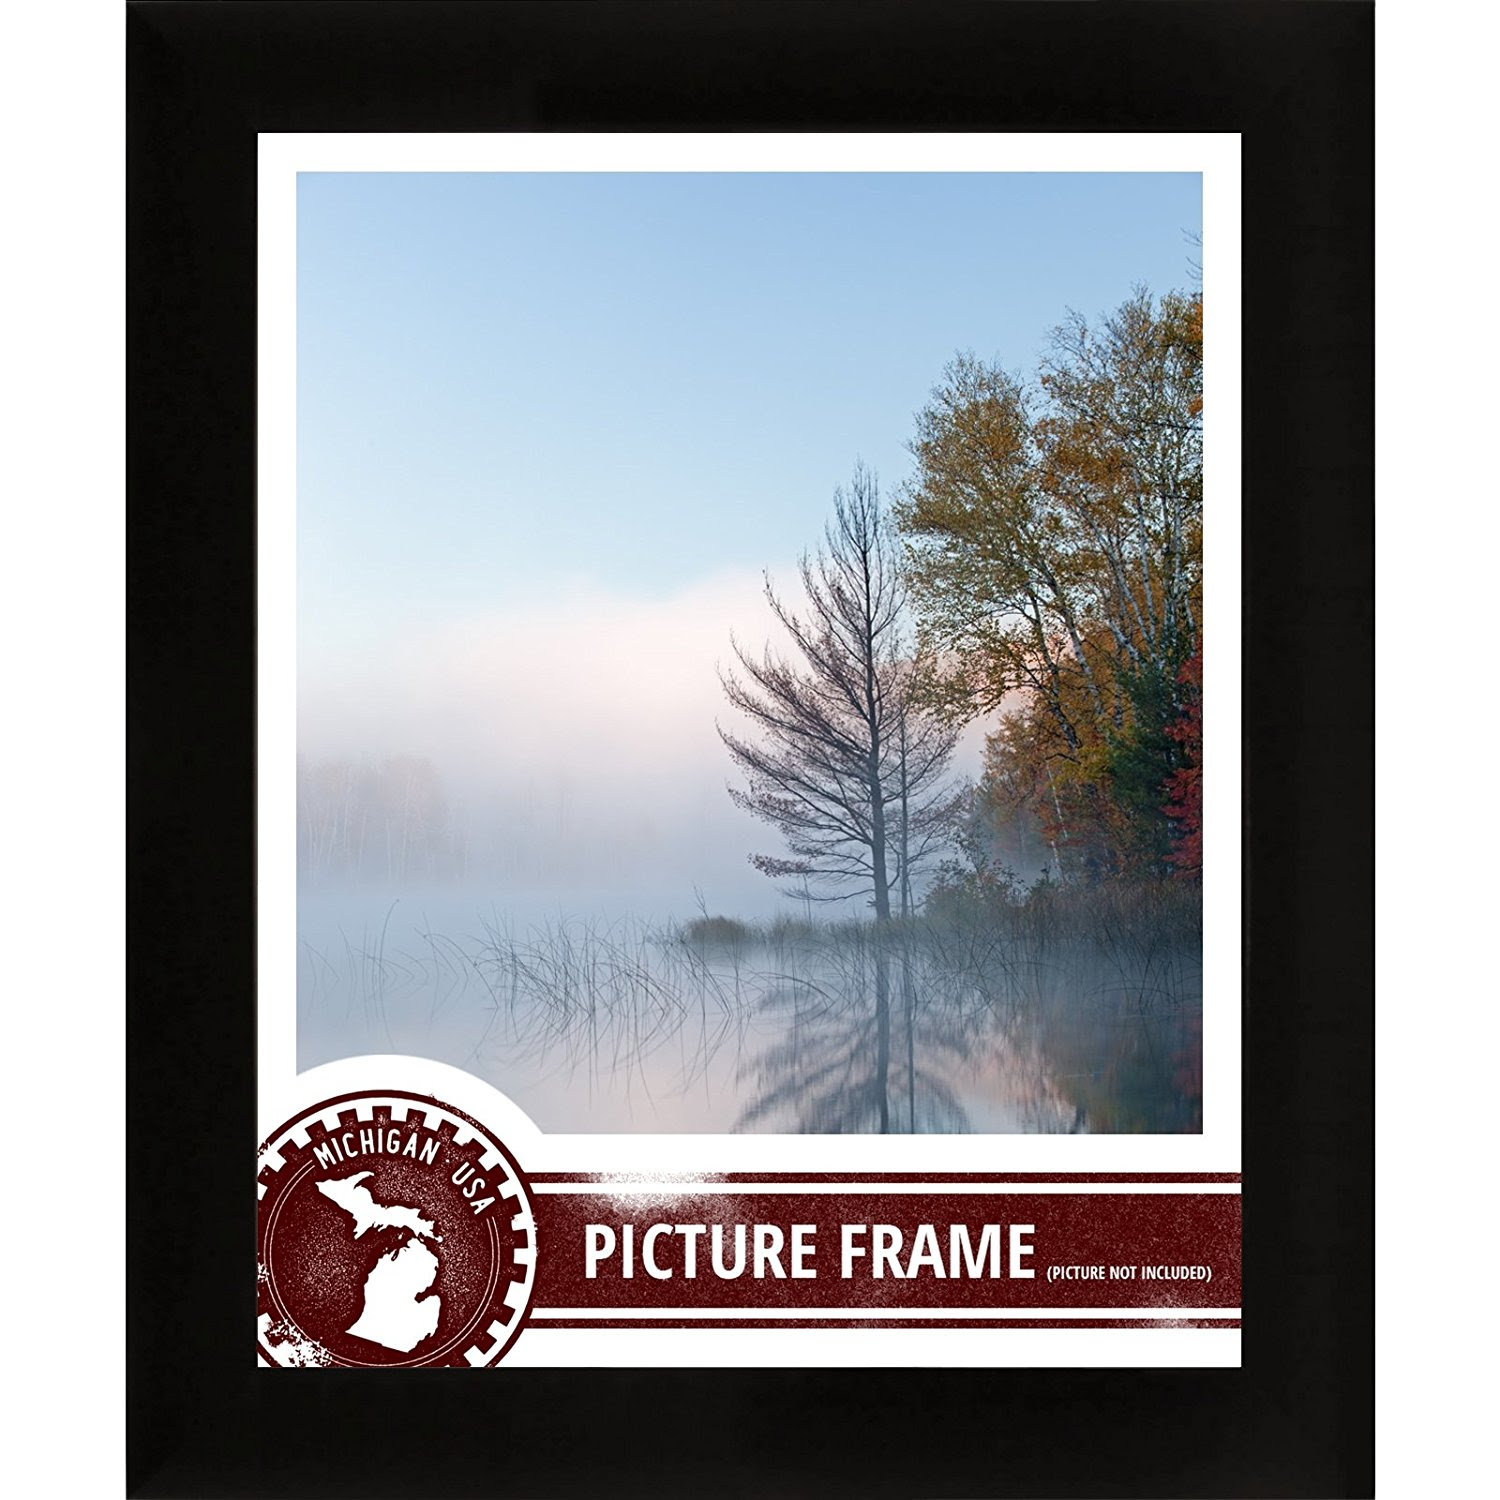 Best 20x30 Picture Frame Ideas And Recommendation Decor On The Line